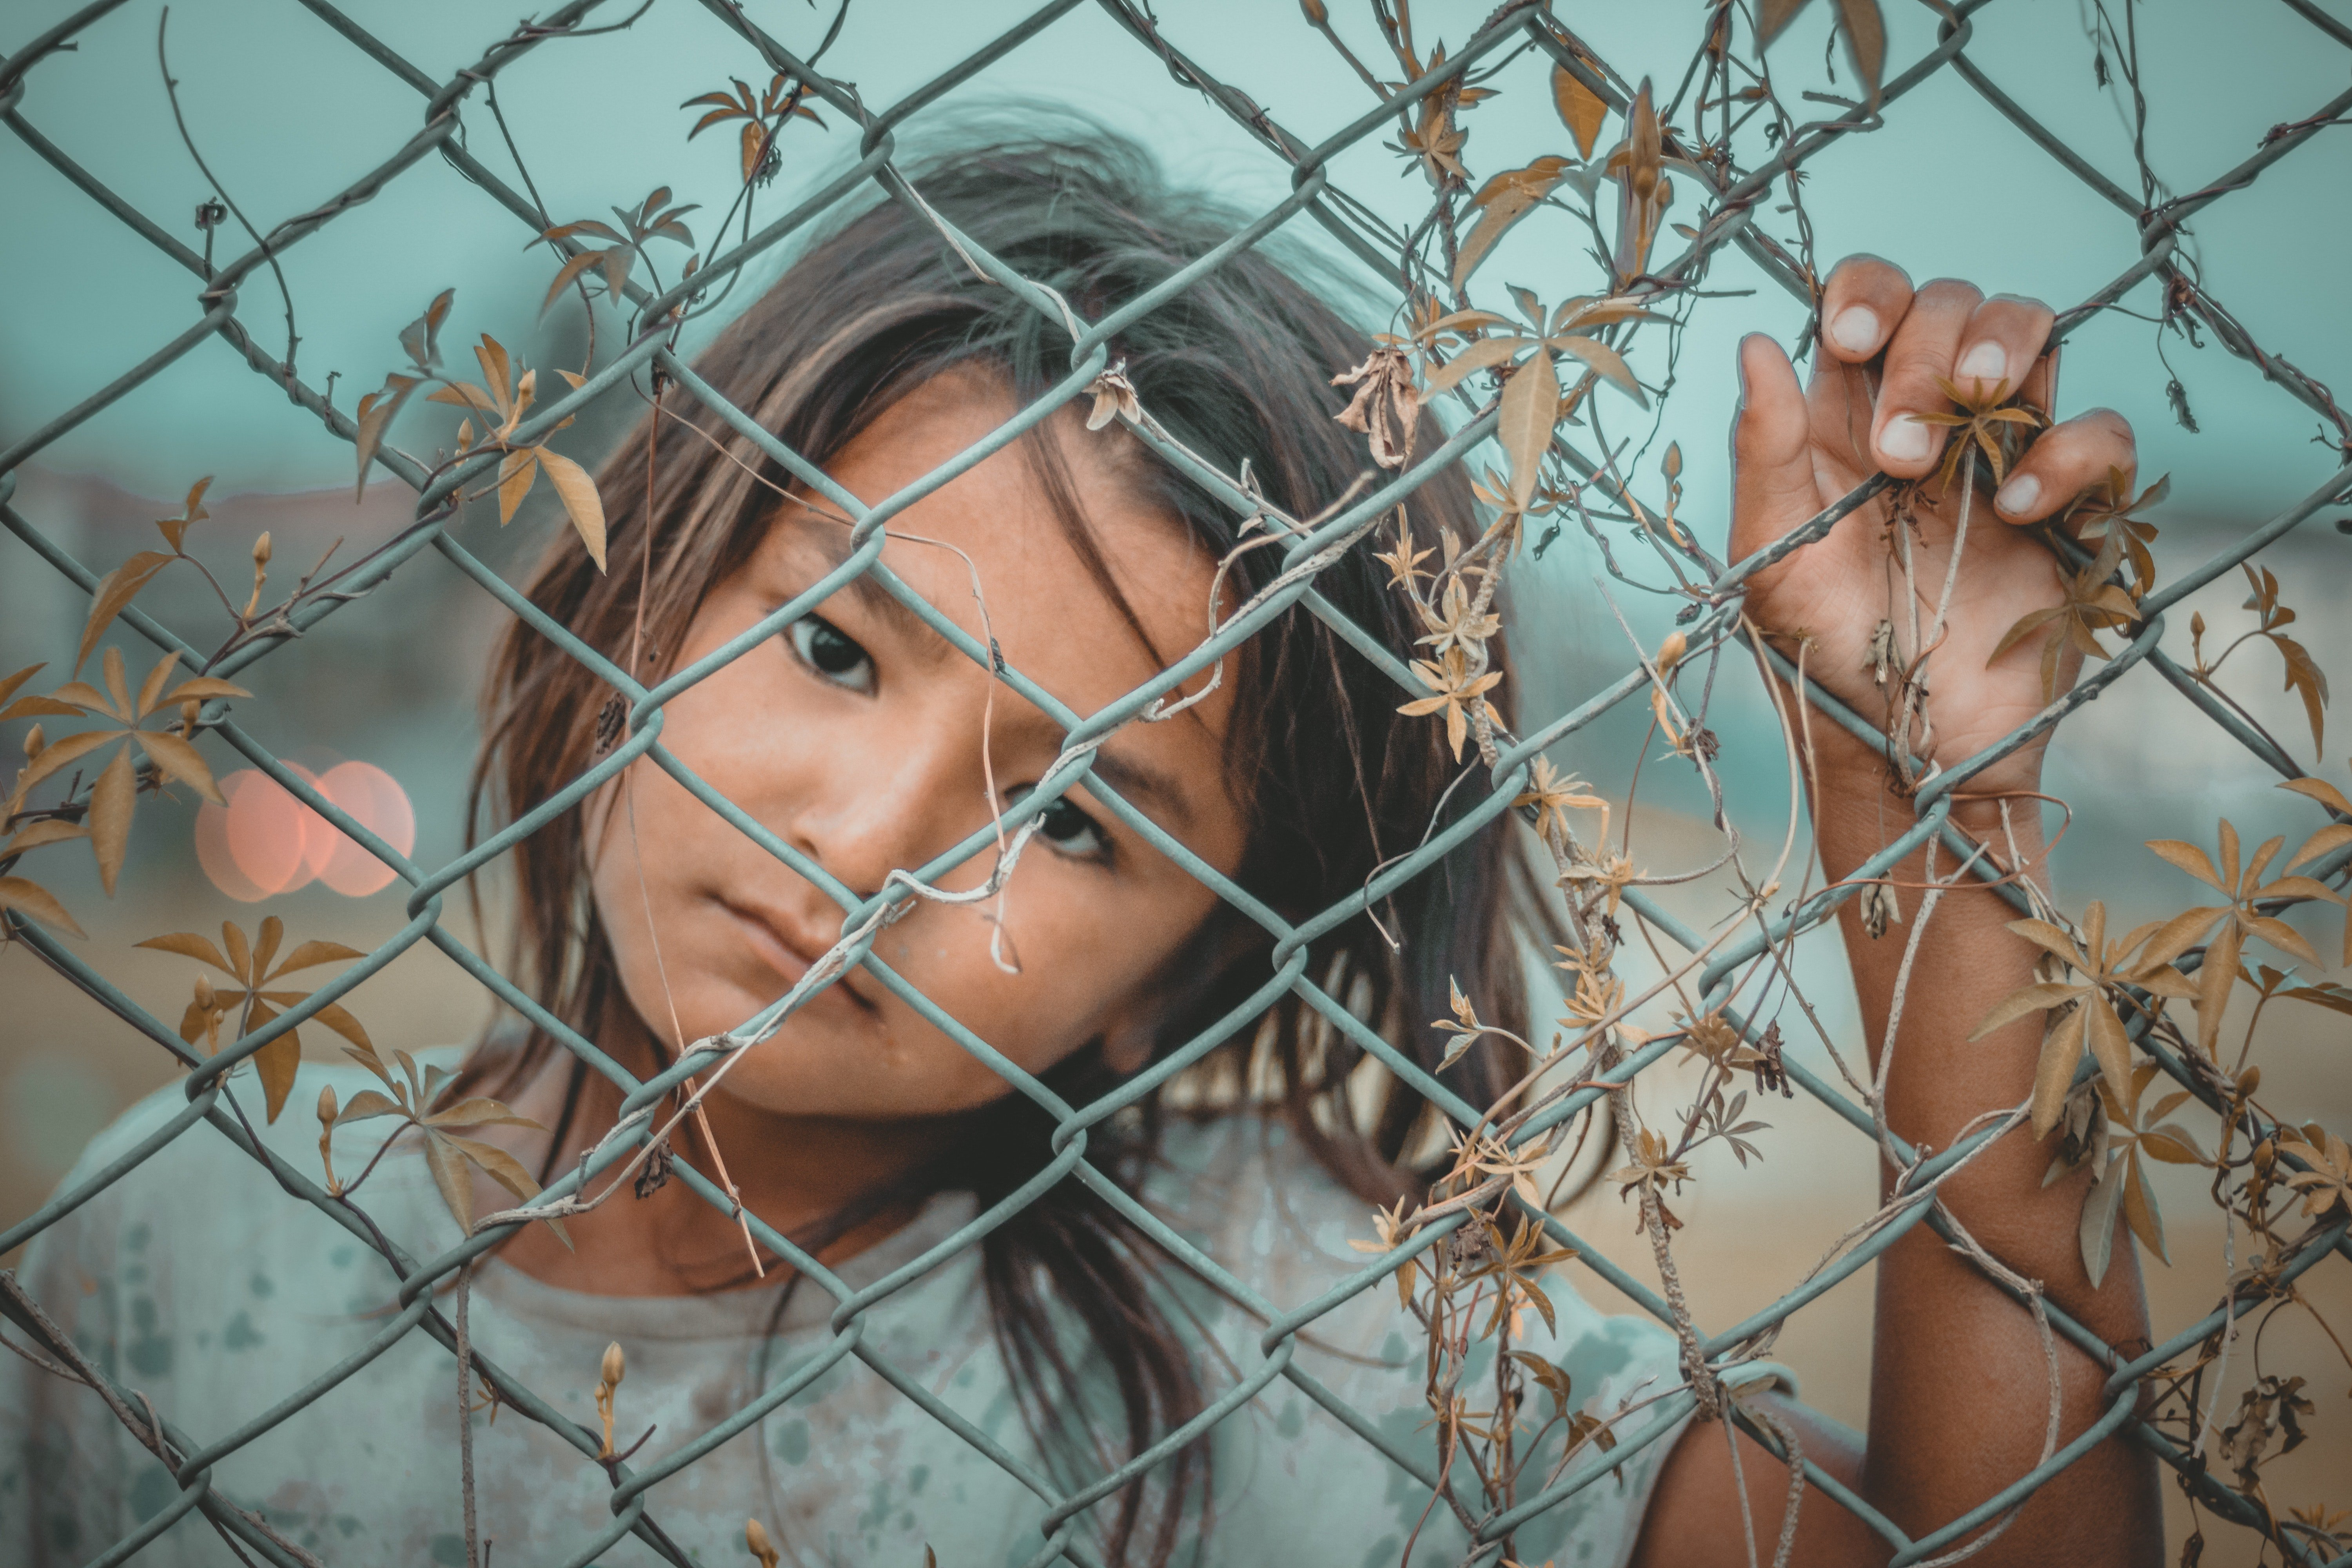 Homeless girl by a fence | Photo: Pexels